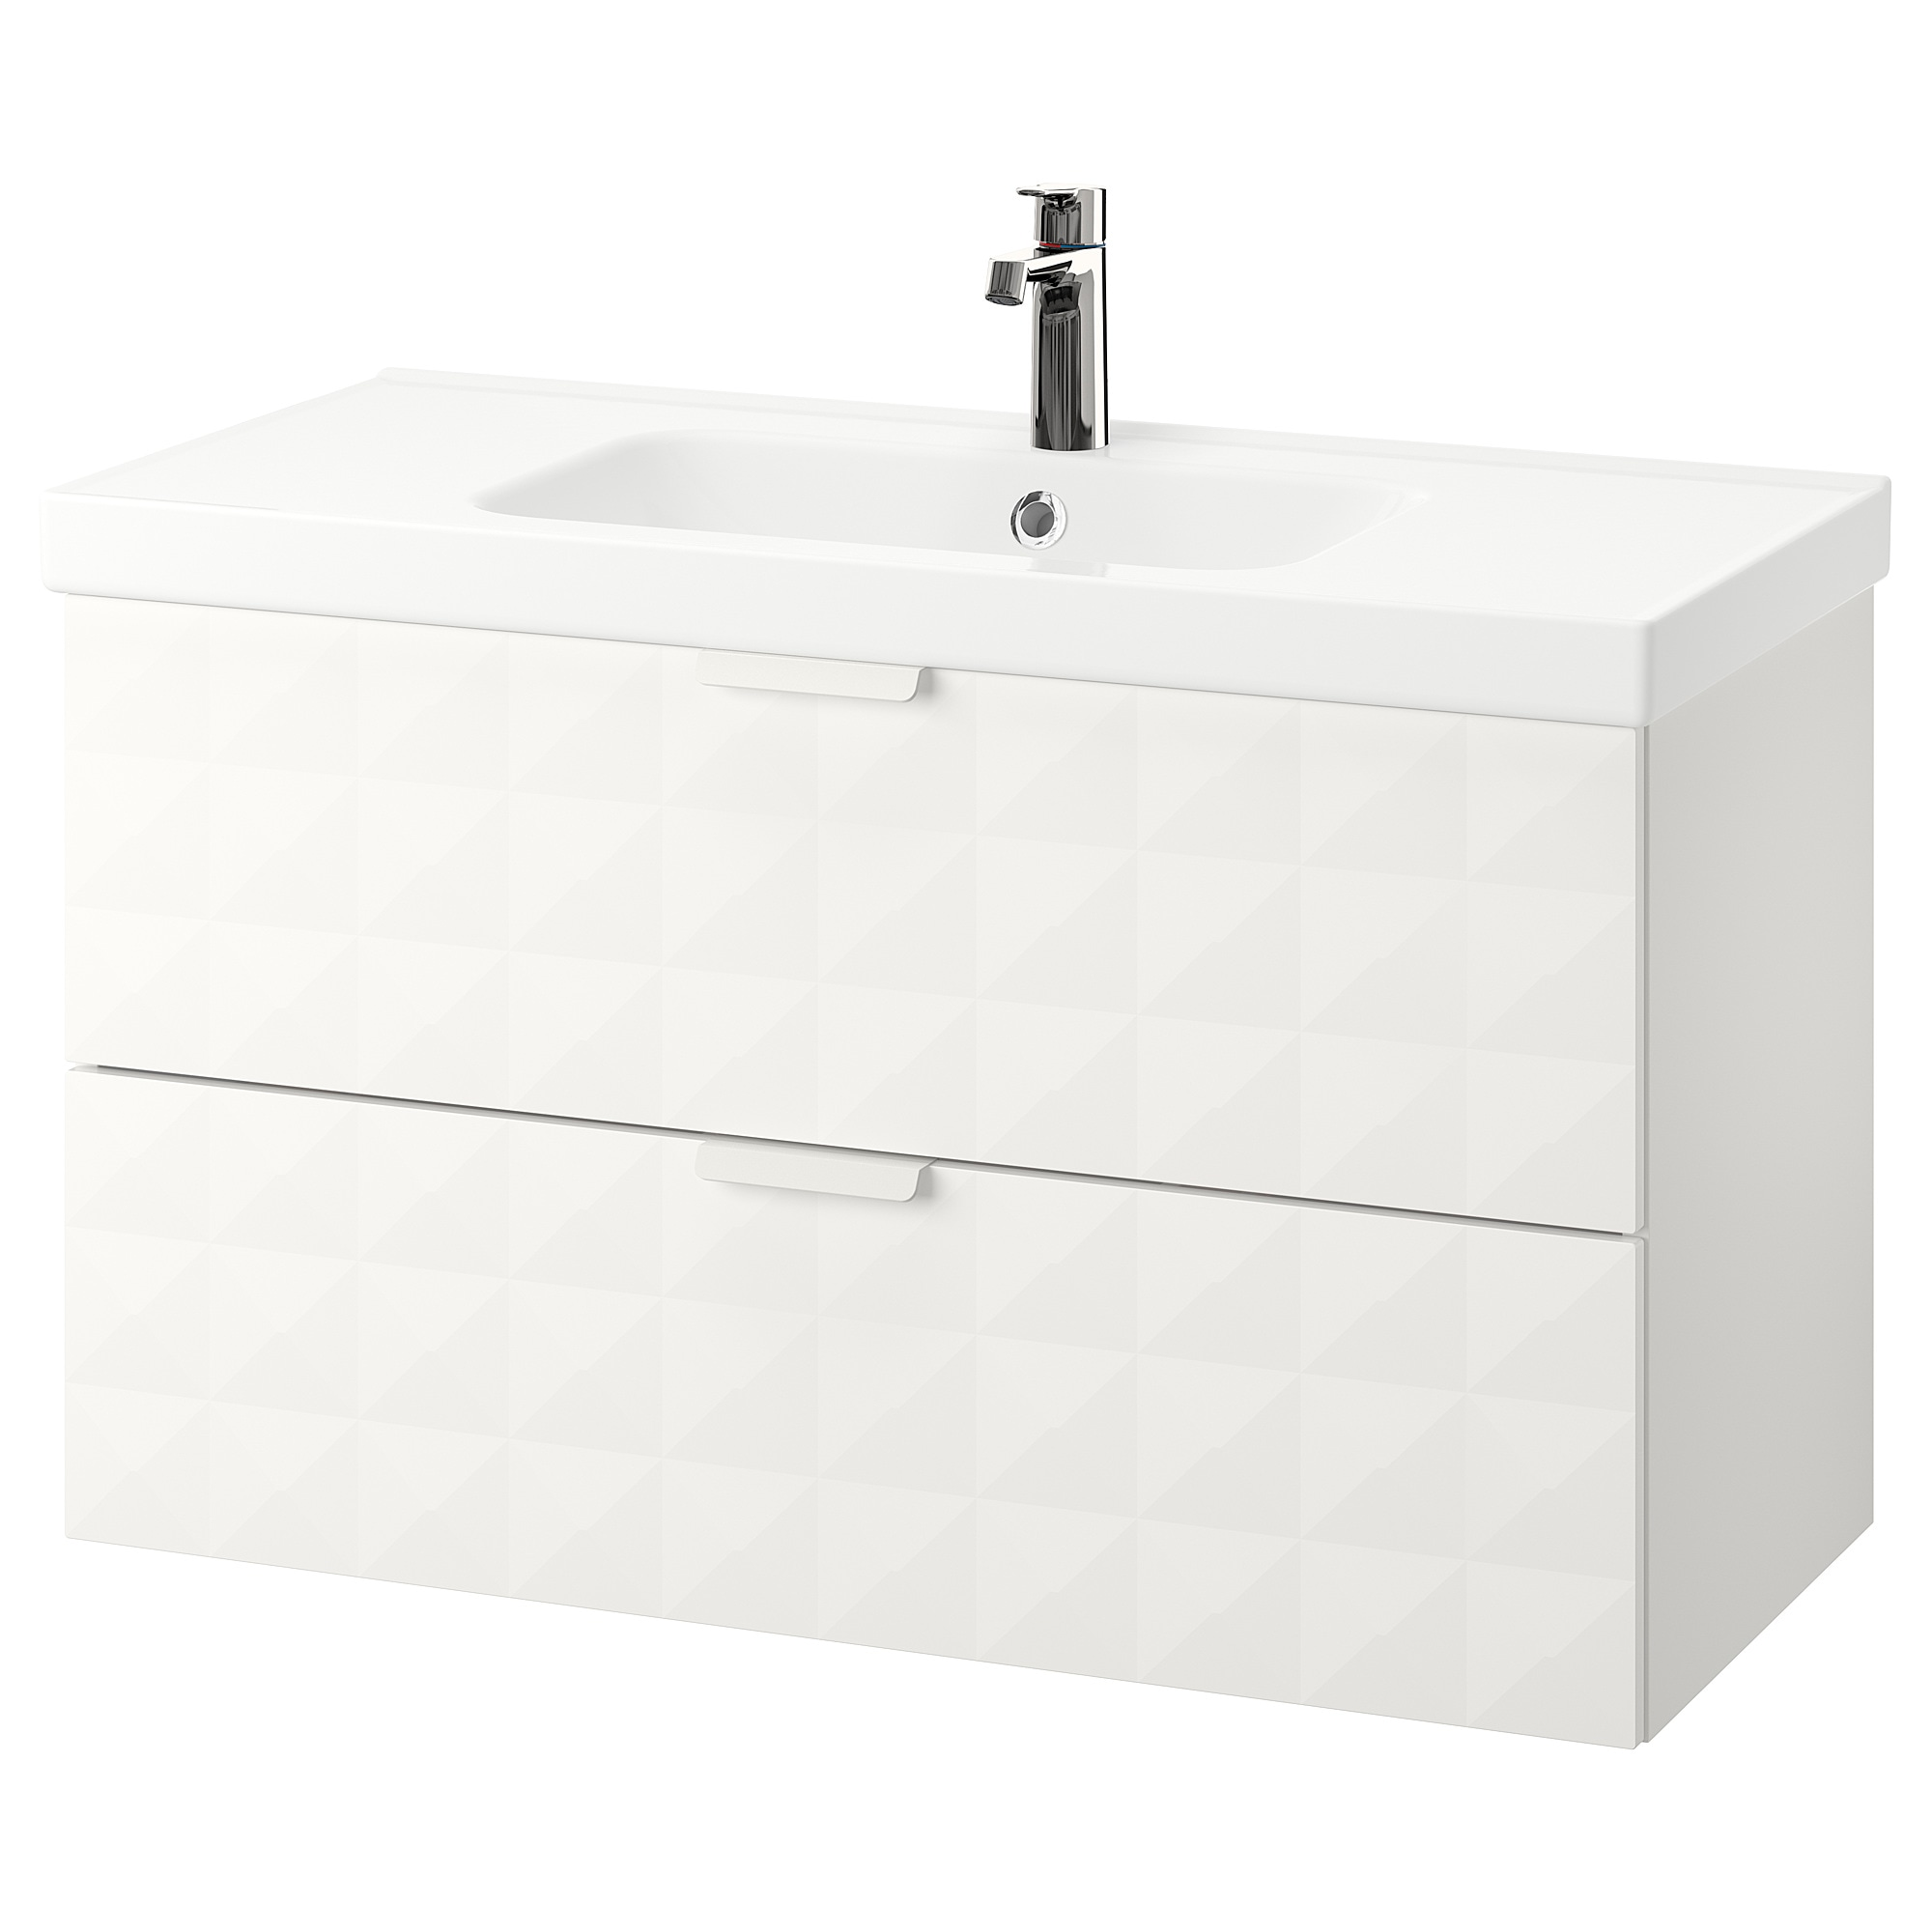 GODMORGON / ODENSVIK Sink cabinet with 2 drawers - Resjön white - IKEA